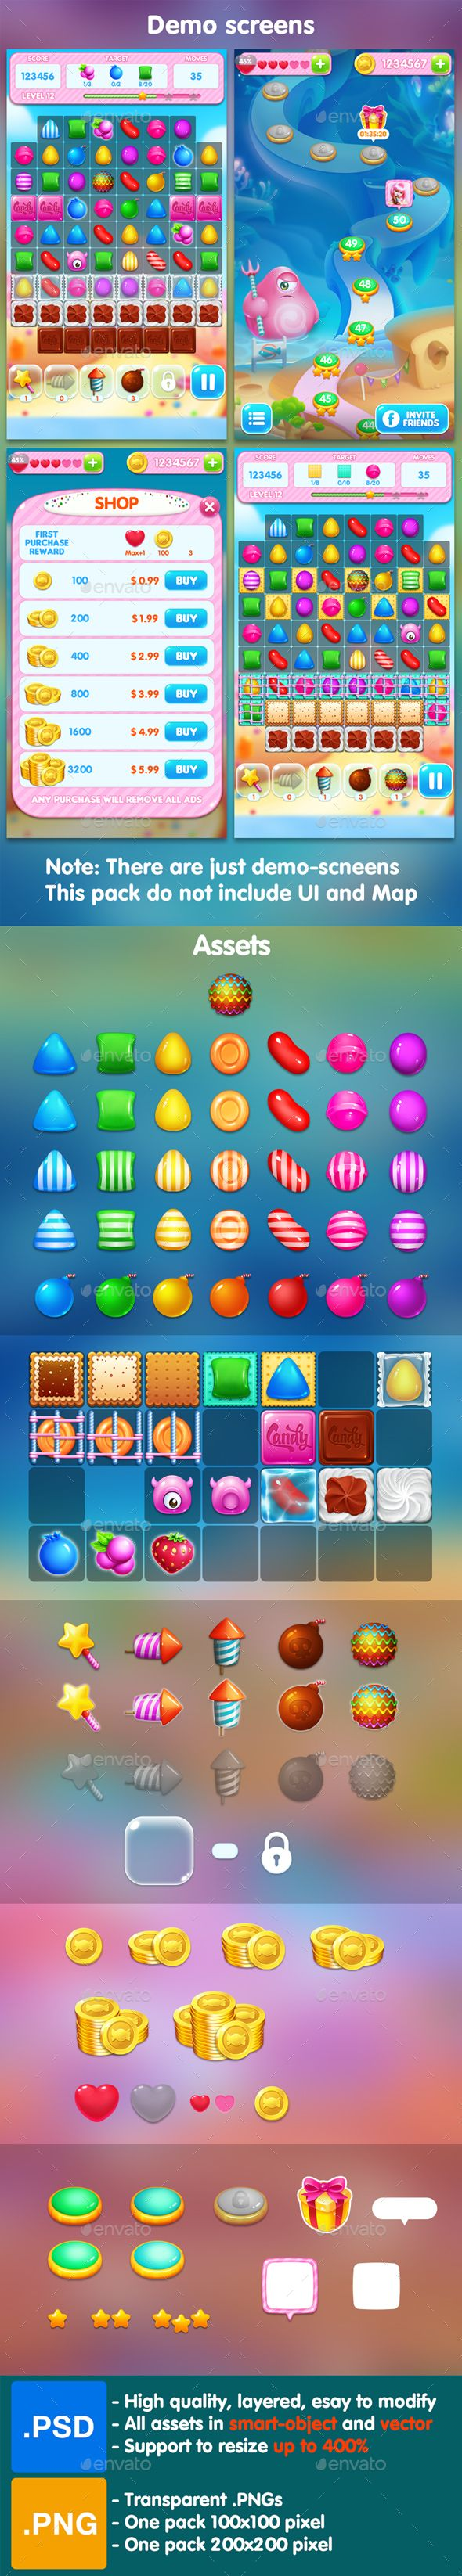 Candy - Match 3 Game Assets - Game Kits Game Assets   Download: https://graphicriver.net/item/candy-match-3-game-assets/19192112?ref=sinzo